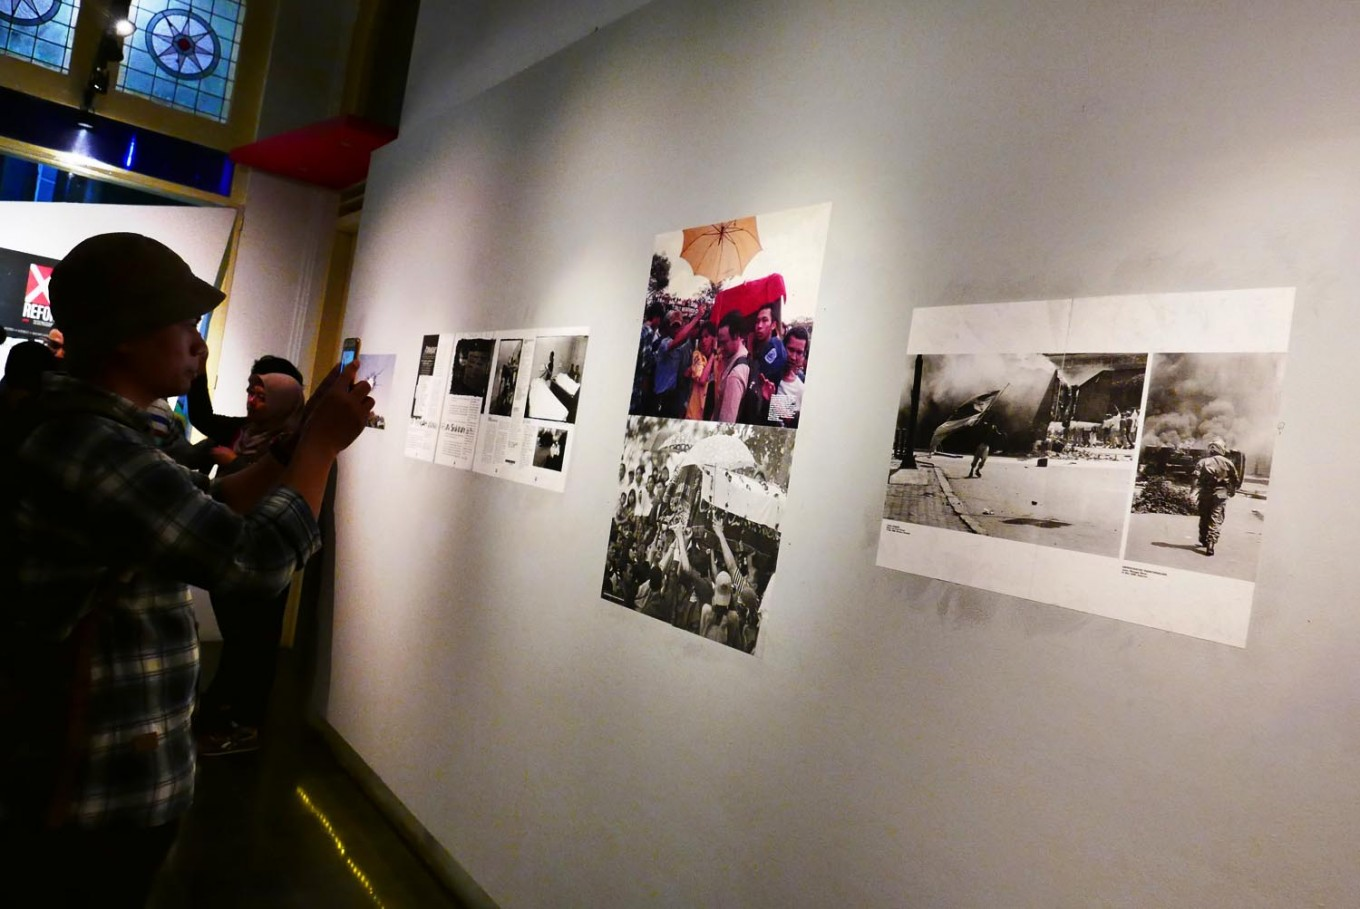 Exhibition reflects on 20 years since Indonesia's reformation